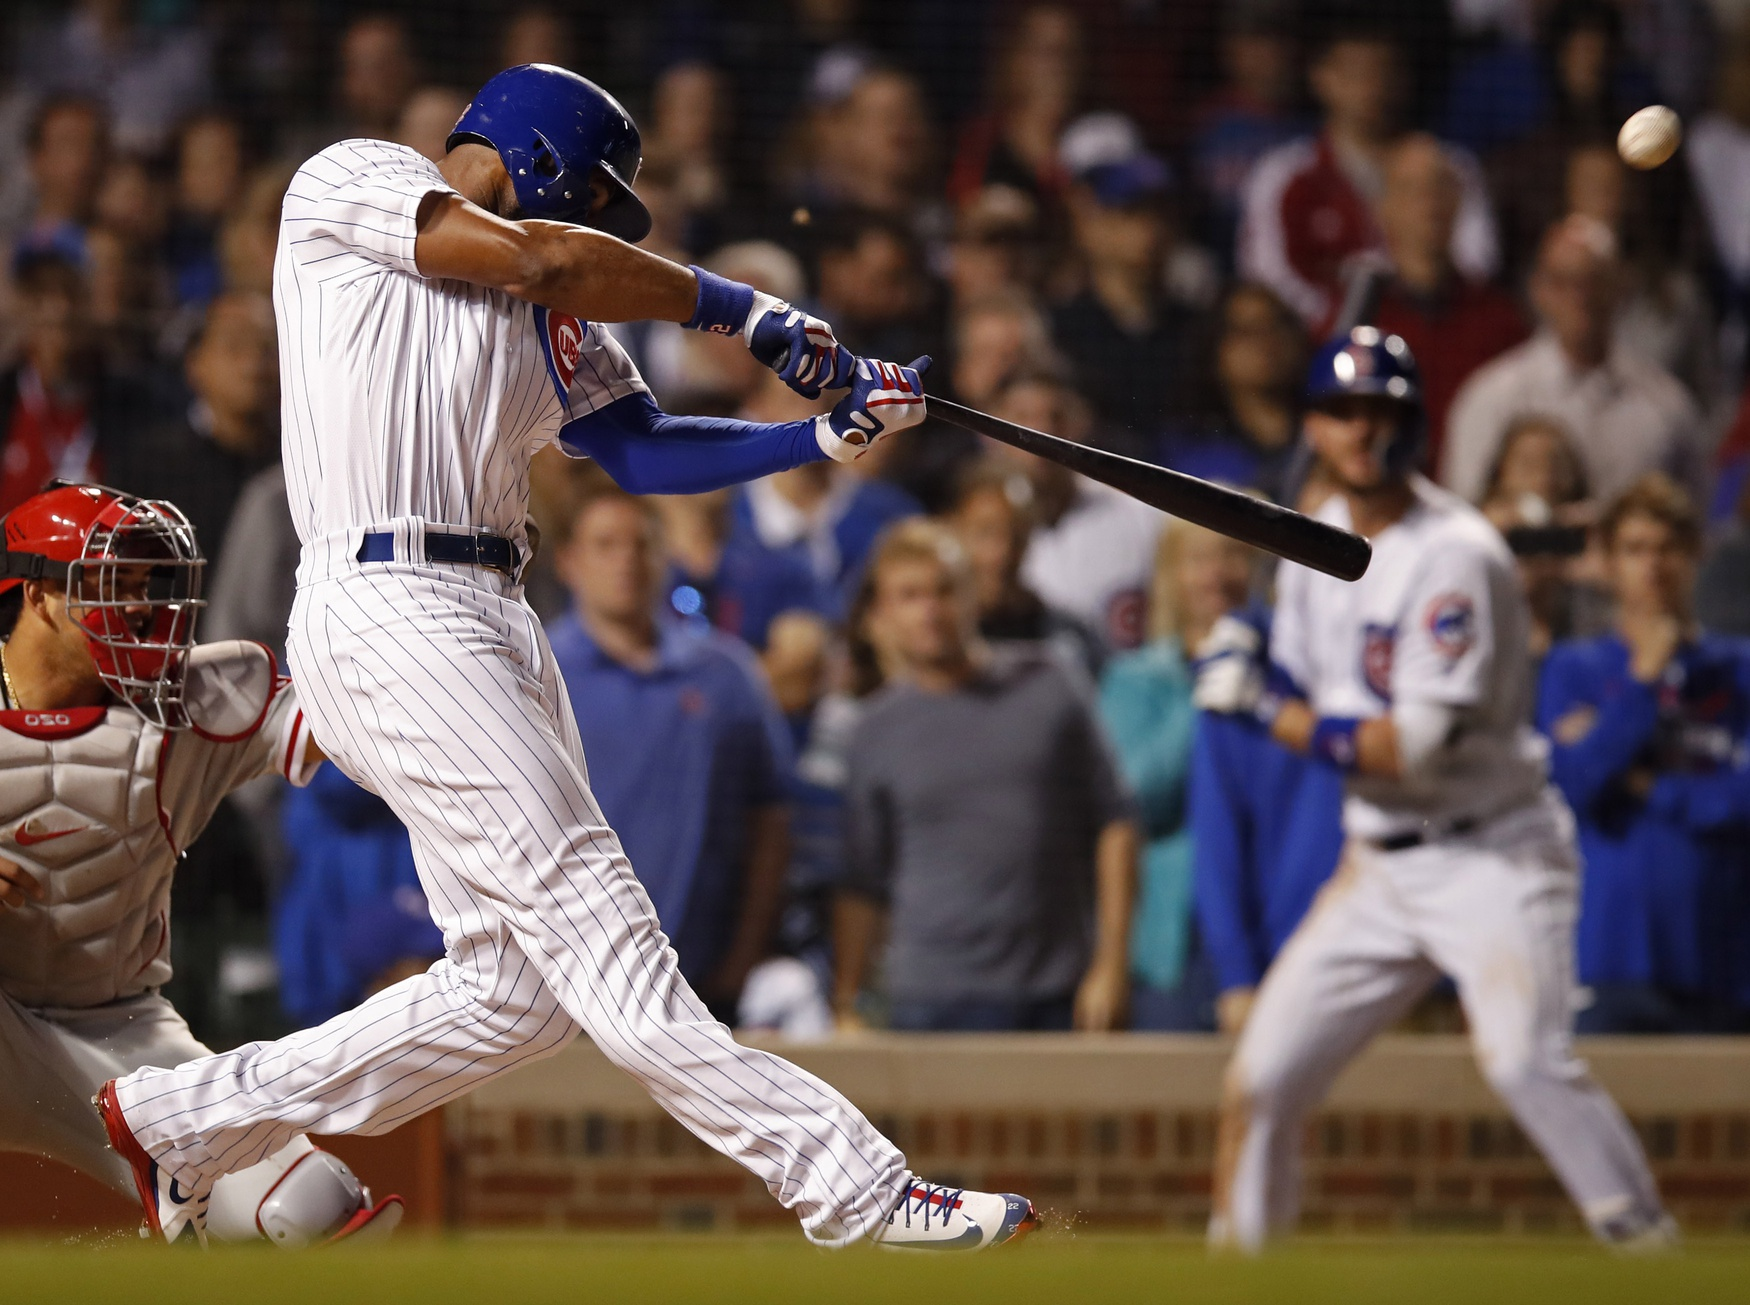 Cubs stun Phillies with walk-off grand slam; What should Kapler have done with Dominguez?